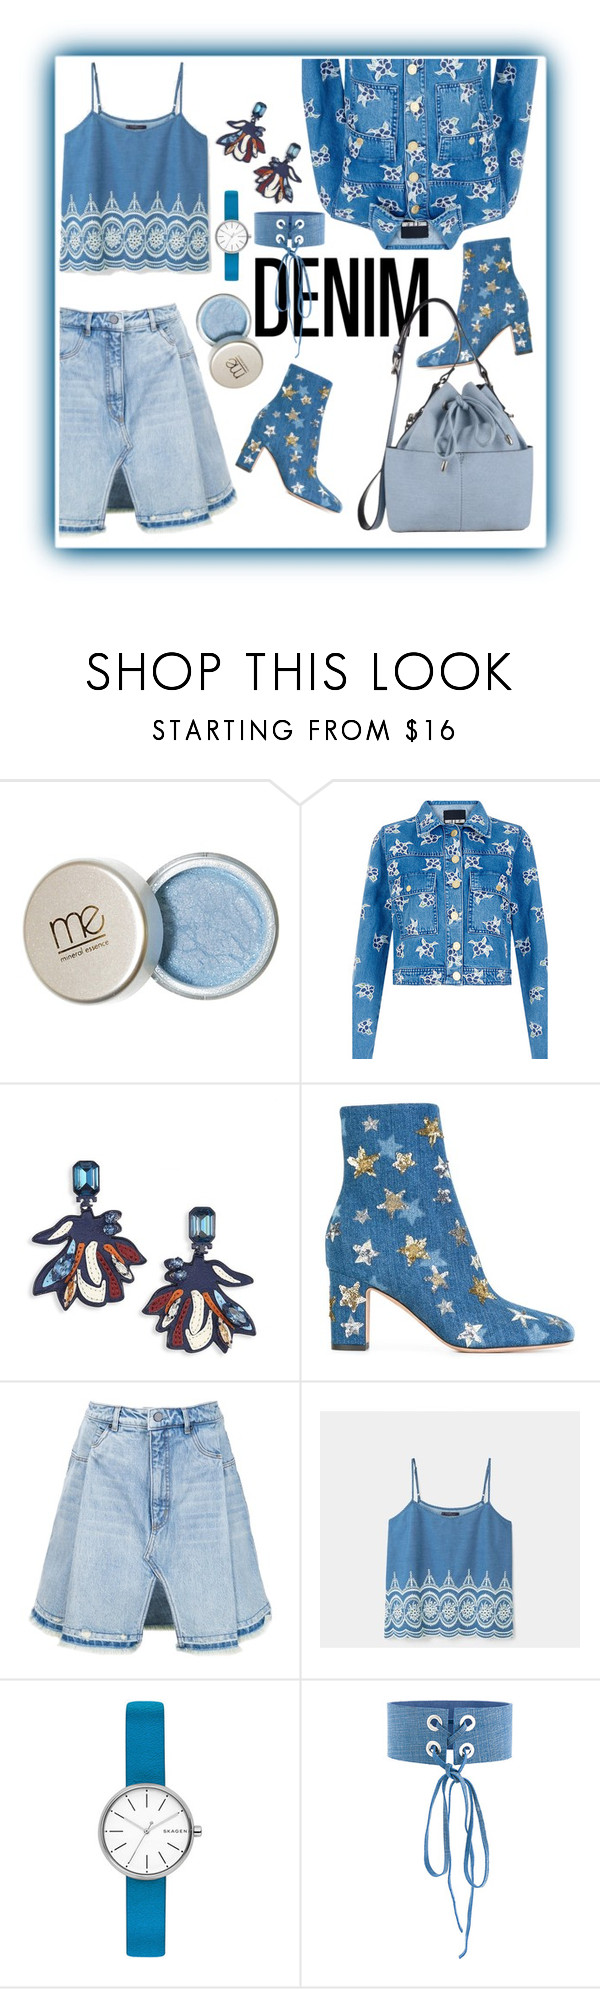 """Denim Head To Toe"" by mizzura ❤ liked on Polyvore featuring House of Holland, Tory Burch, Valentino, T By Alexander Wang, Violeta by Mango, Skagen, Manokhi and Miss Selfridge"